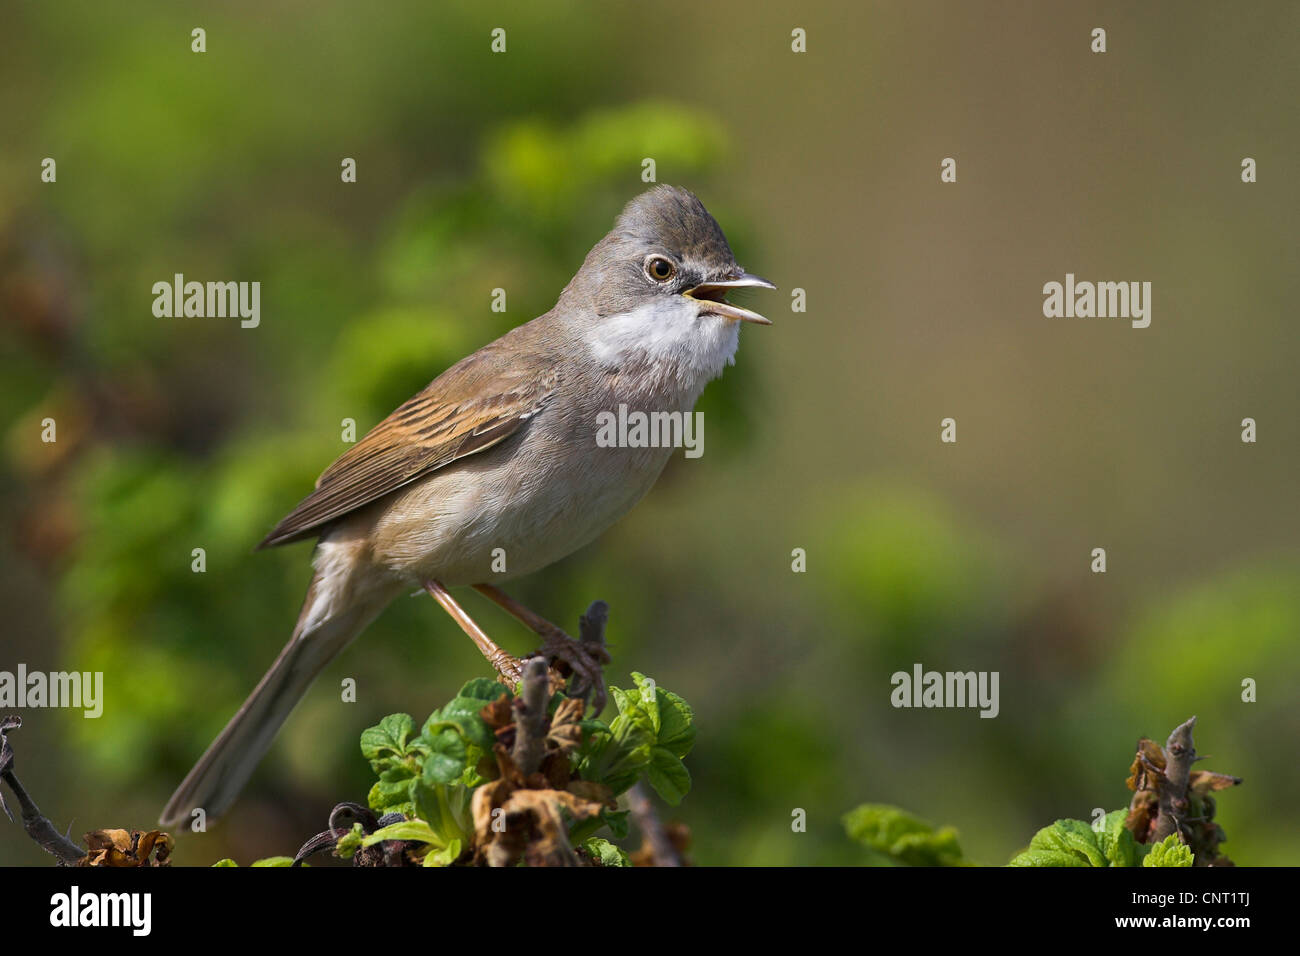 whitethroat (Sylvia communis), sings, Netherlands, Texel - Stock Image